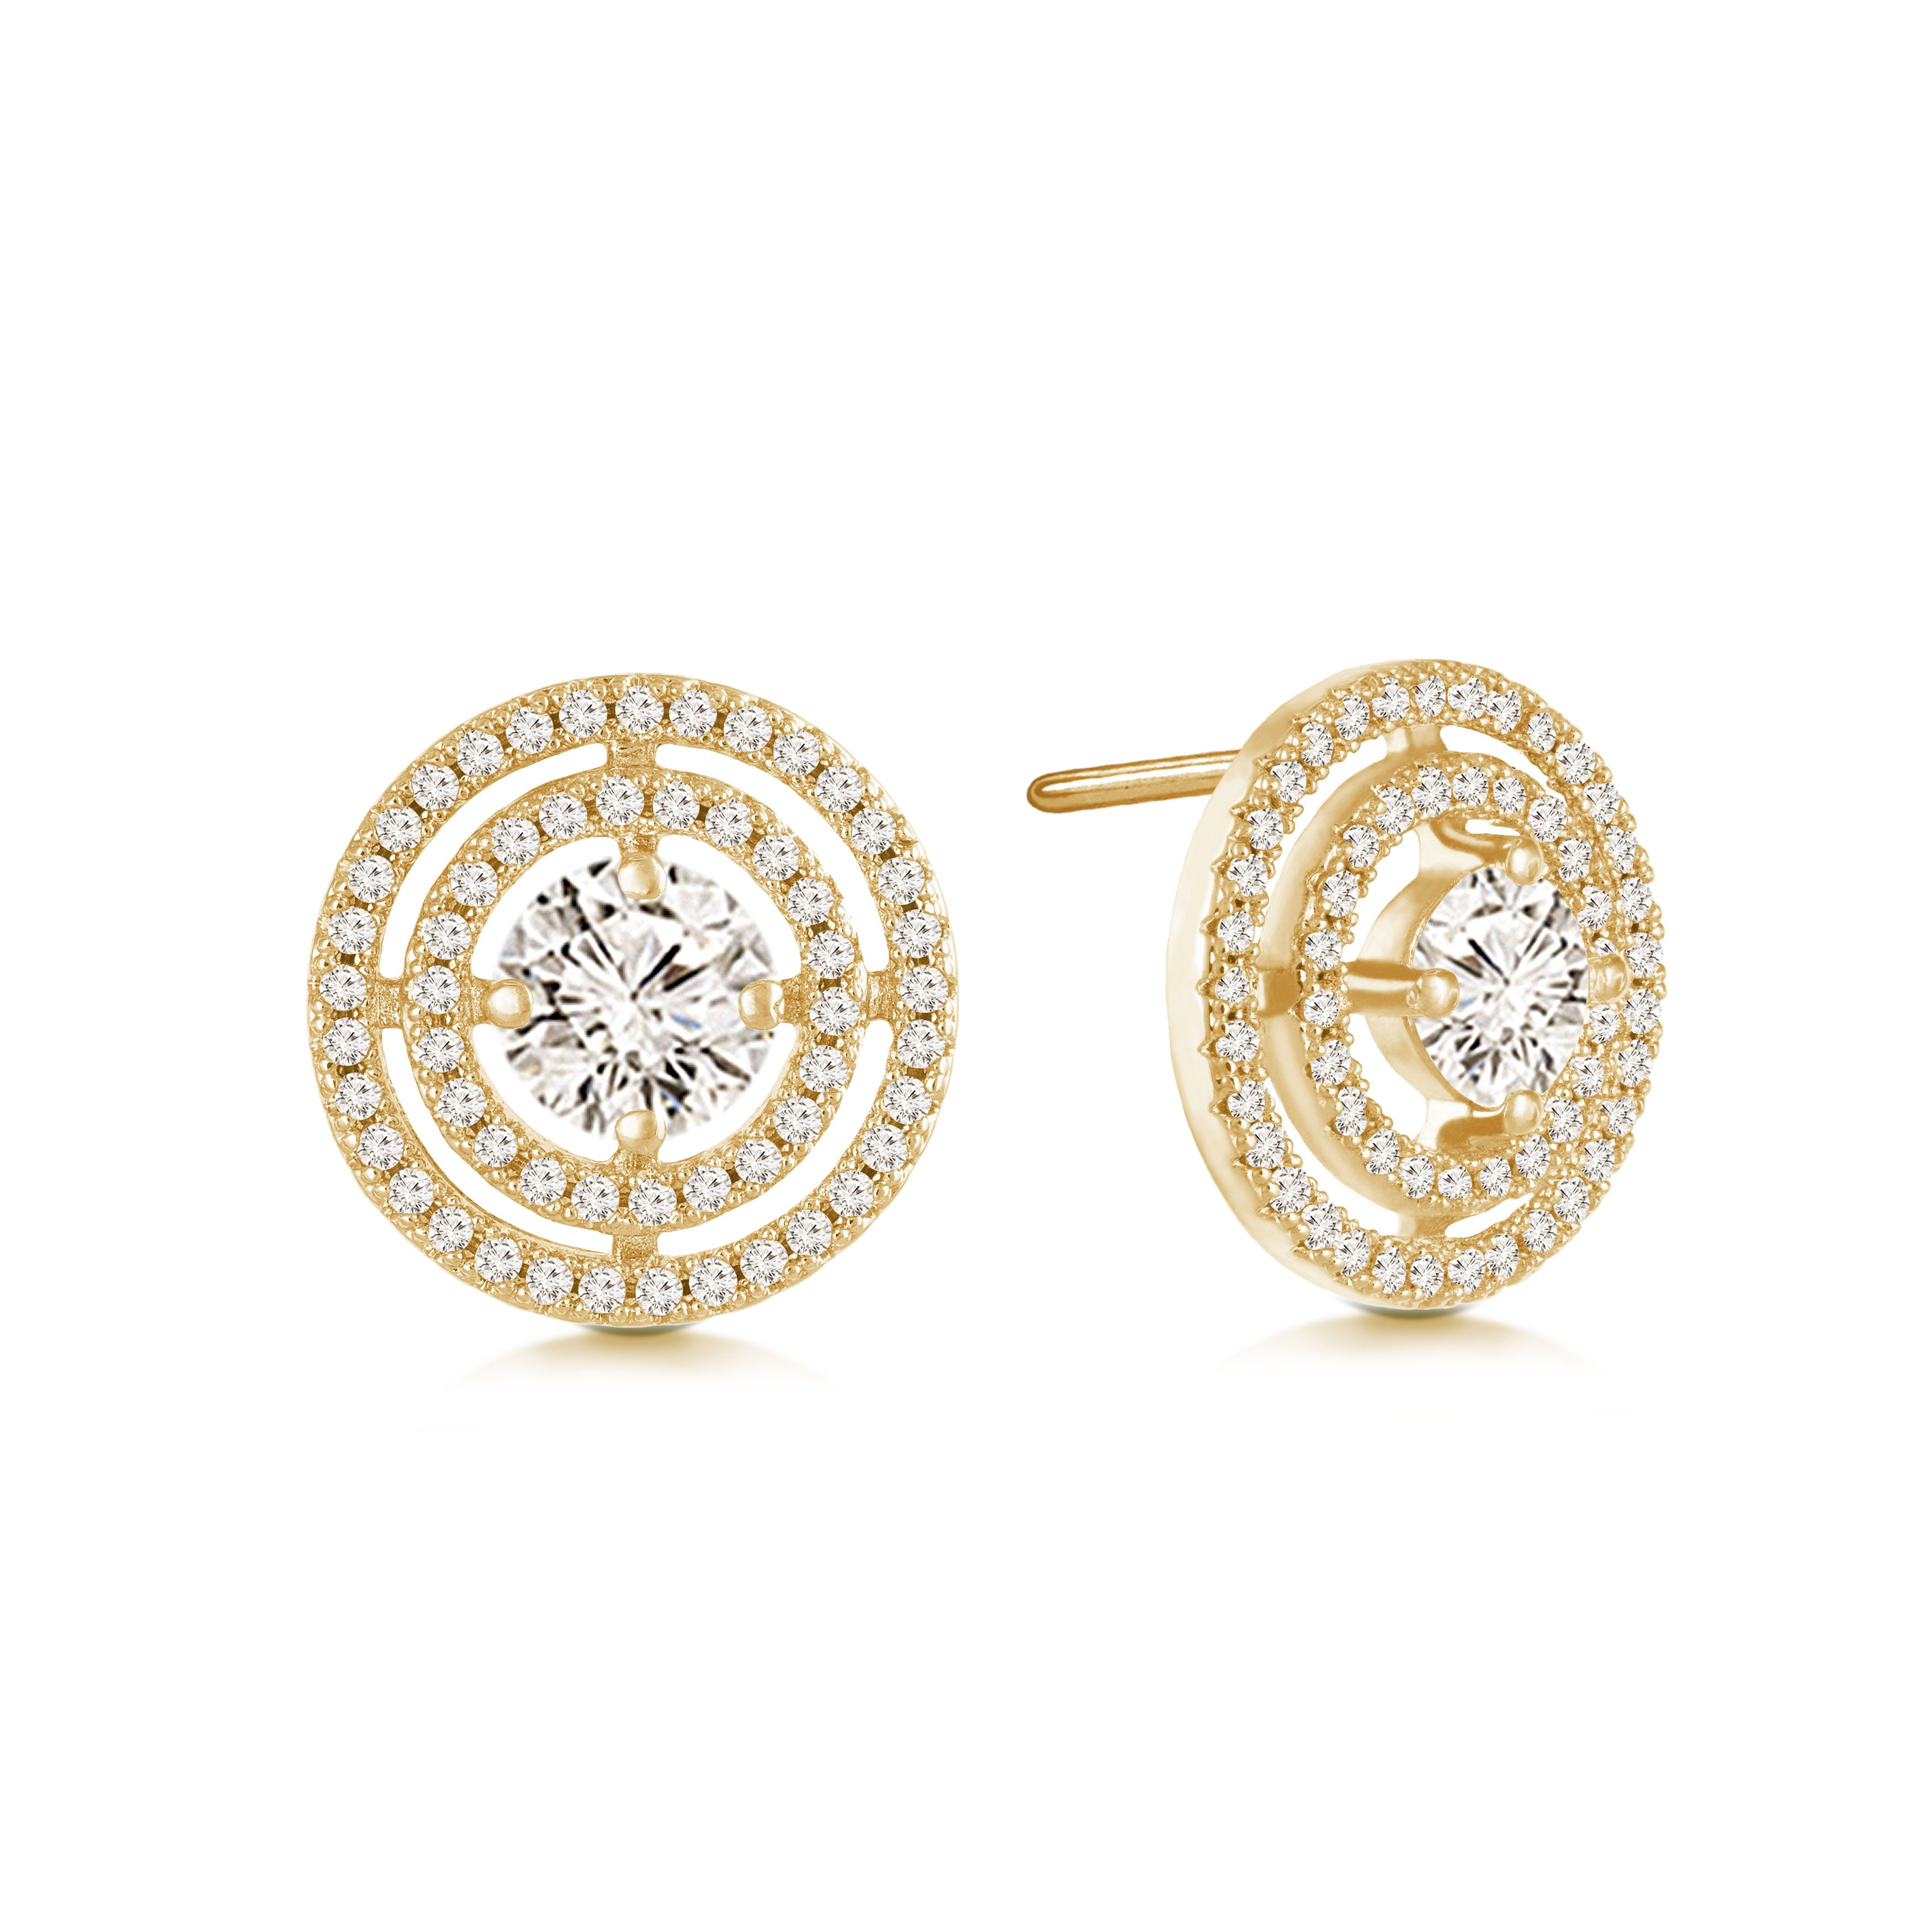 """Circled in Diamonds"" 2.7ctw Pave Open Circles Post Earrings - Gold tone"